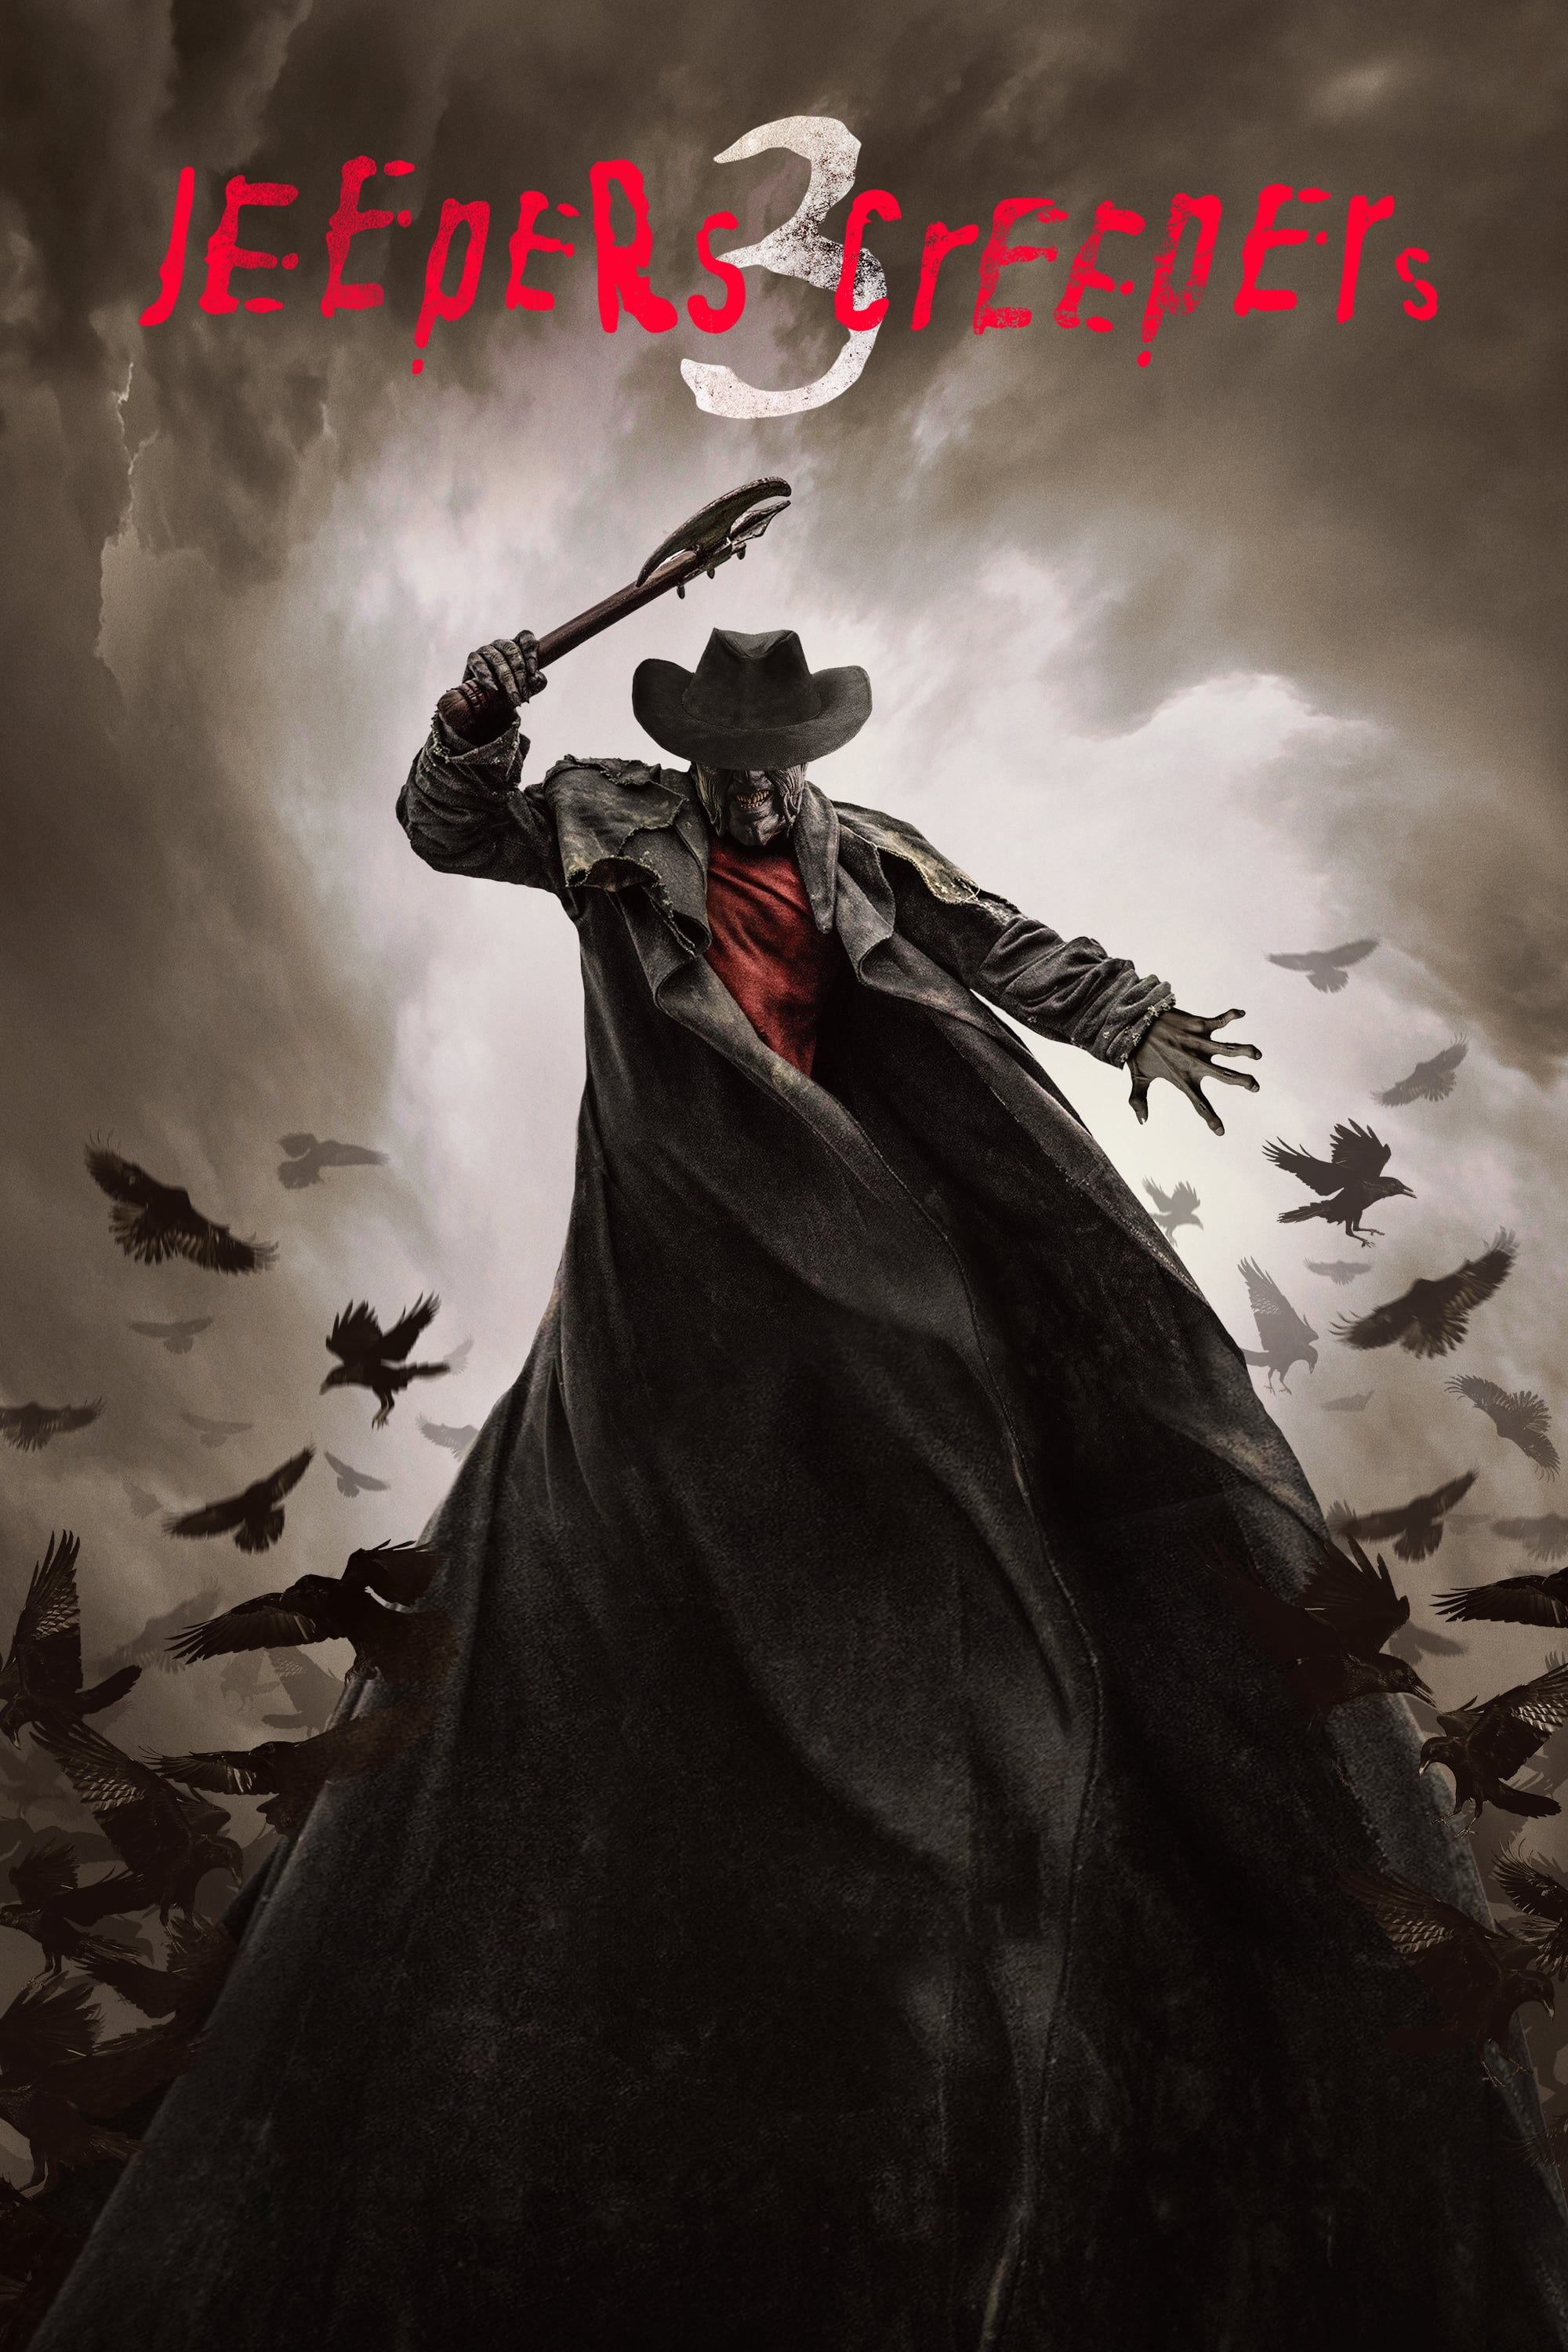 Jeepers Creepers 3 Online Anschauen